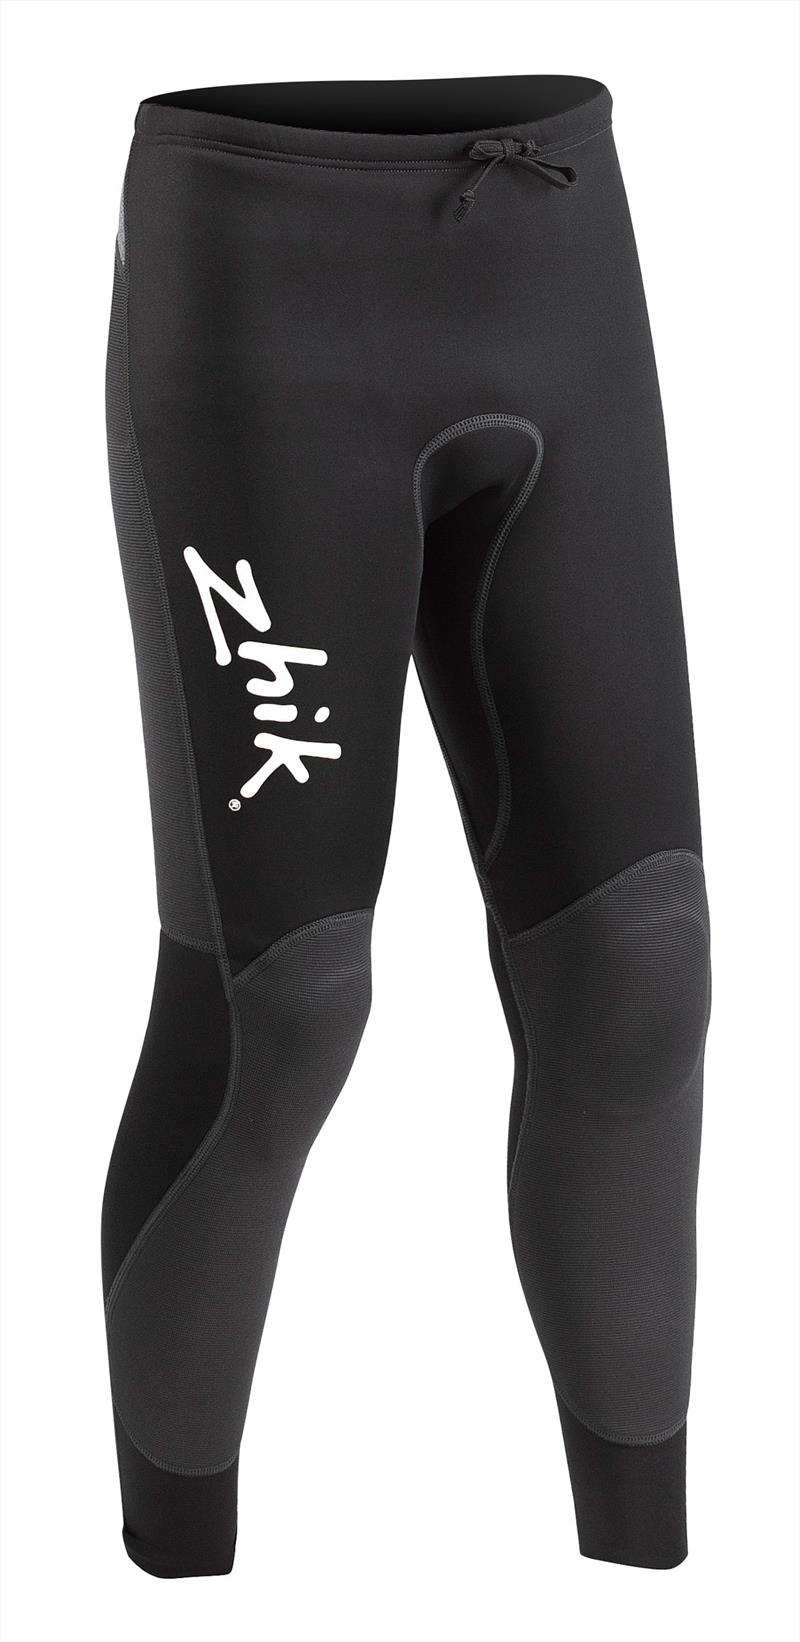 Zhik Junior Neoprene Pants - photo © Zhik